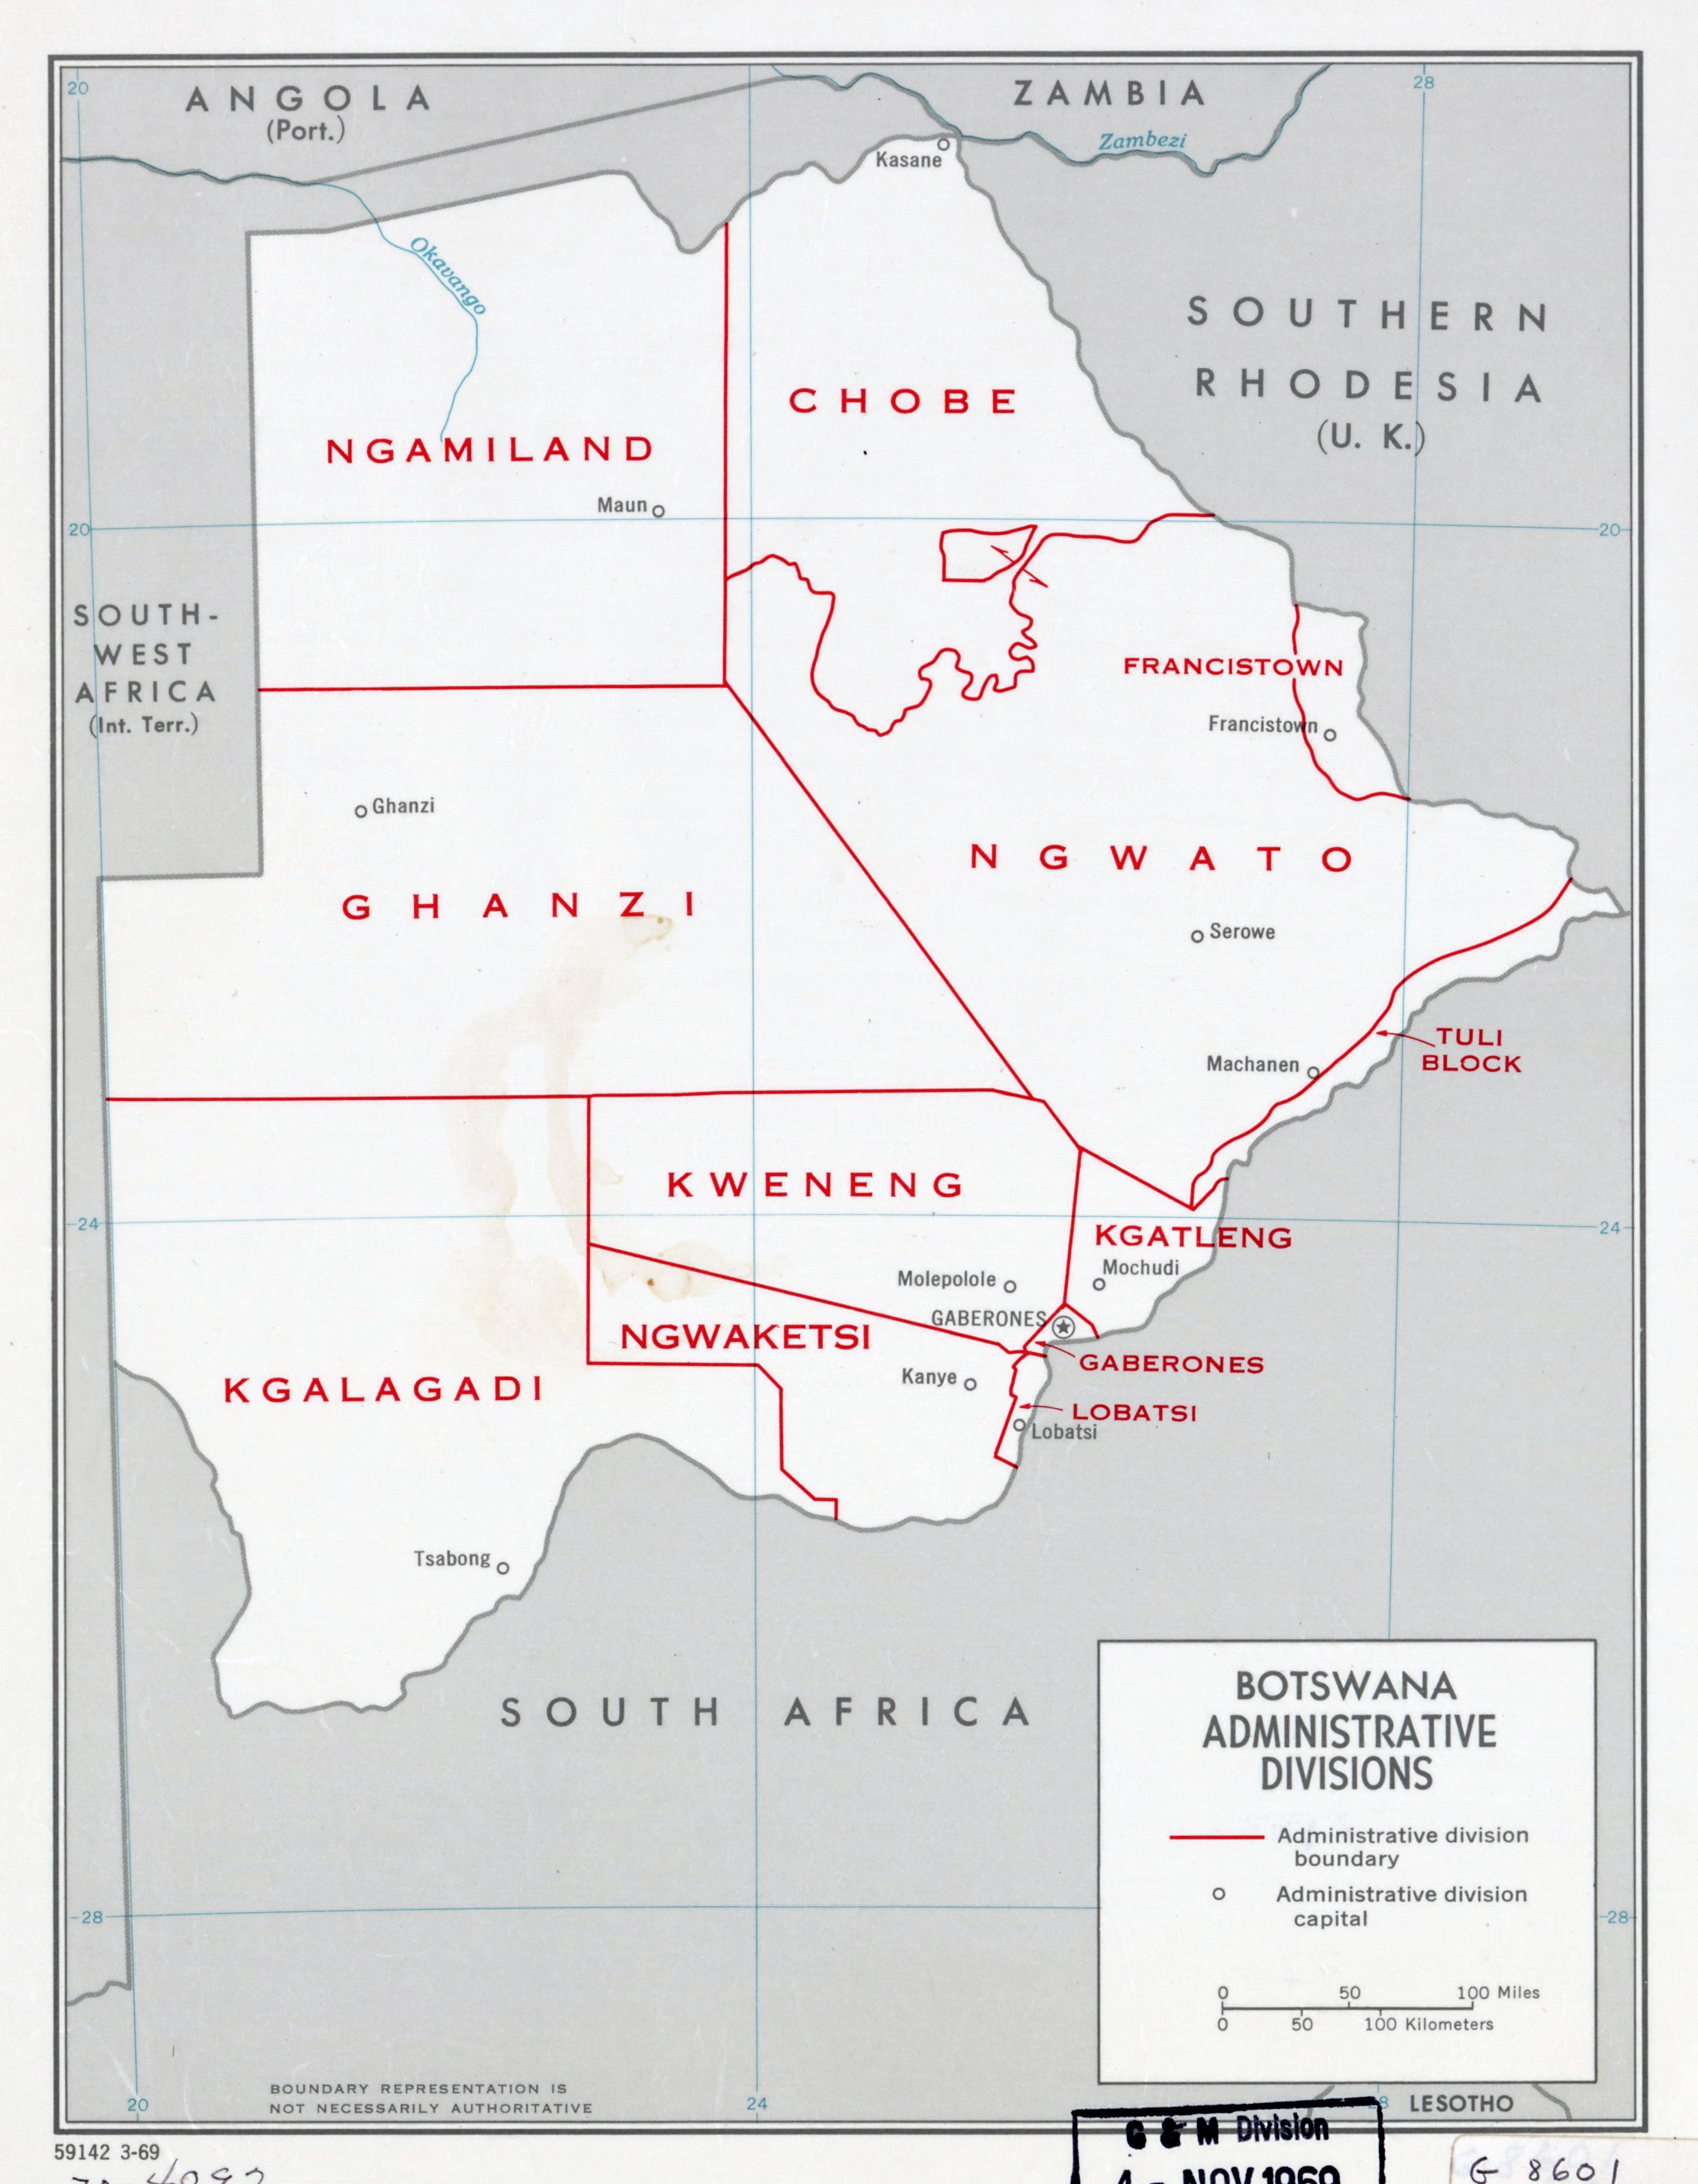 Large scale administrative divisions map of Botswana 1969